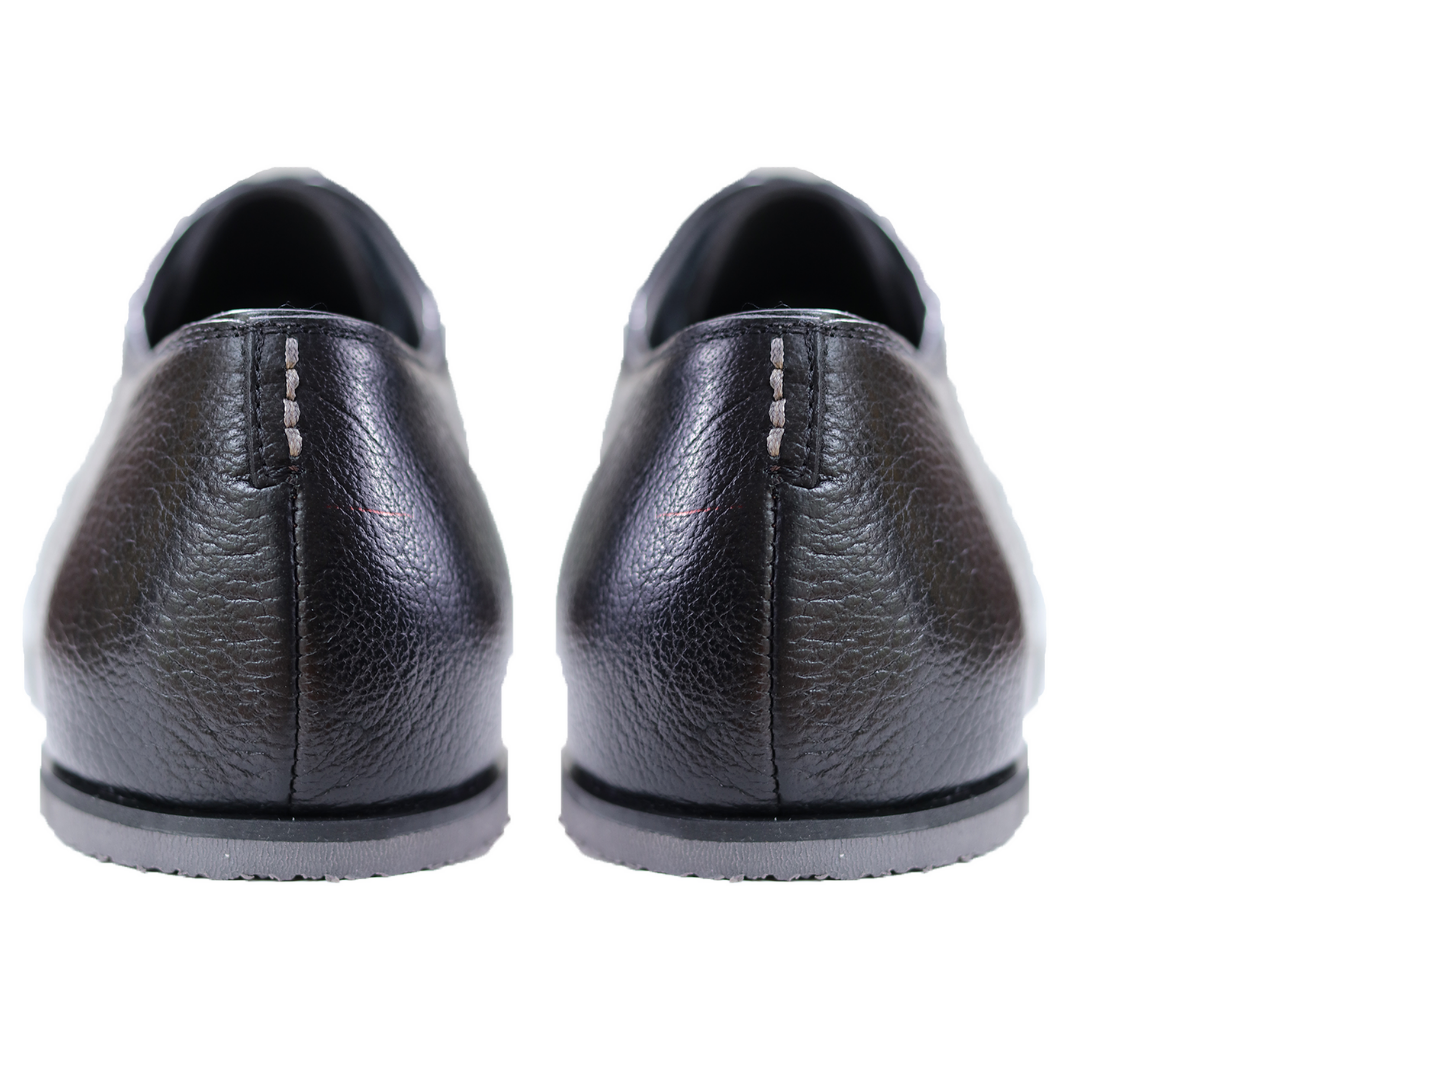 Zero Drop Dress Shoes Crafted In Italy Damn Comfortable Icanchu